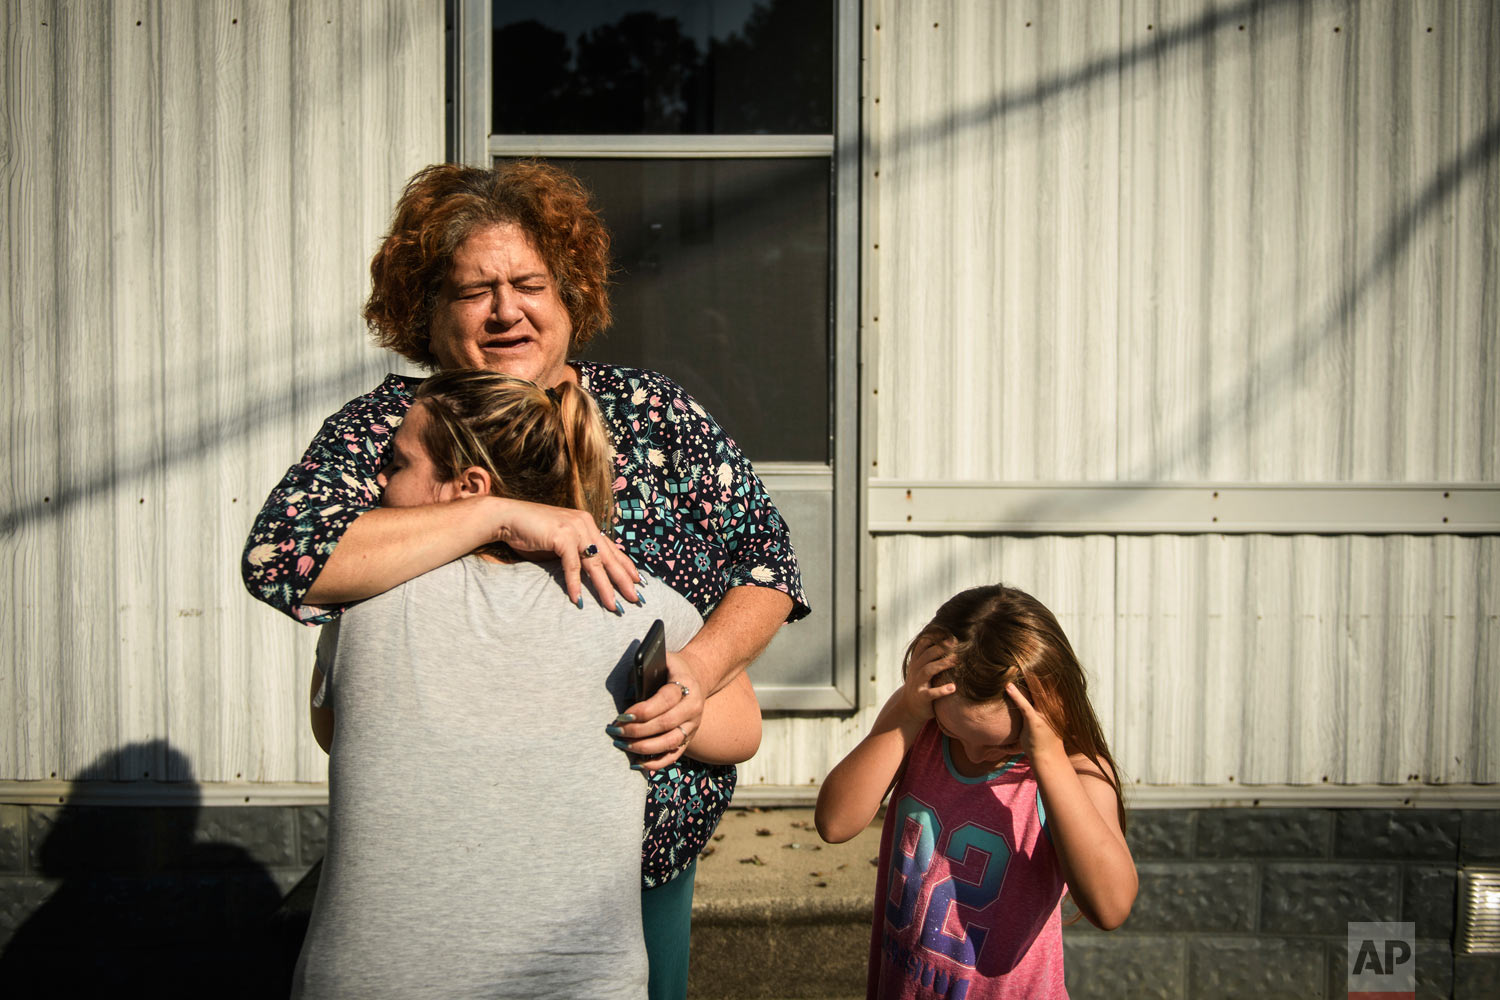 Melanie Wensel gives her neighbor Linda Remmel a hug as Wensel's daughter, Emily, stands near, Thursday, Sept. 20, 2018, at Speranza Mobile Home Park off of Manchester Road in Spring Lake, N.C. Most of the residents of the park had their homes flooded from Hurricane Florence and will have to find a new place to live. (Andrew Craft/The Fayetteville Observer via AP)